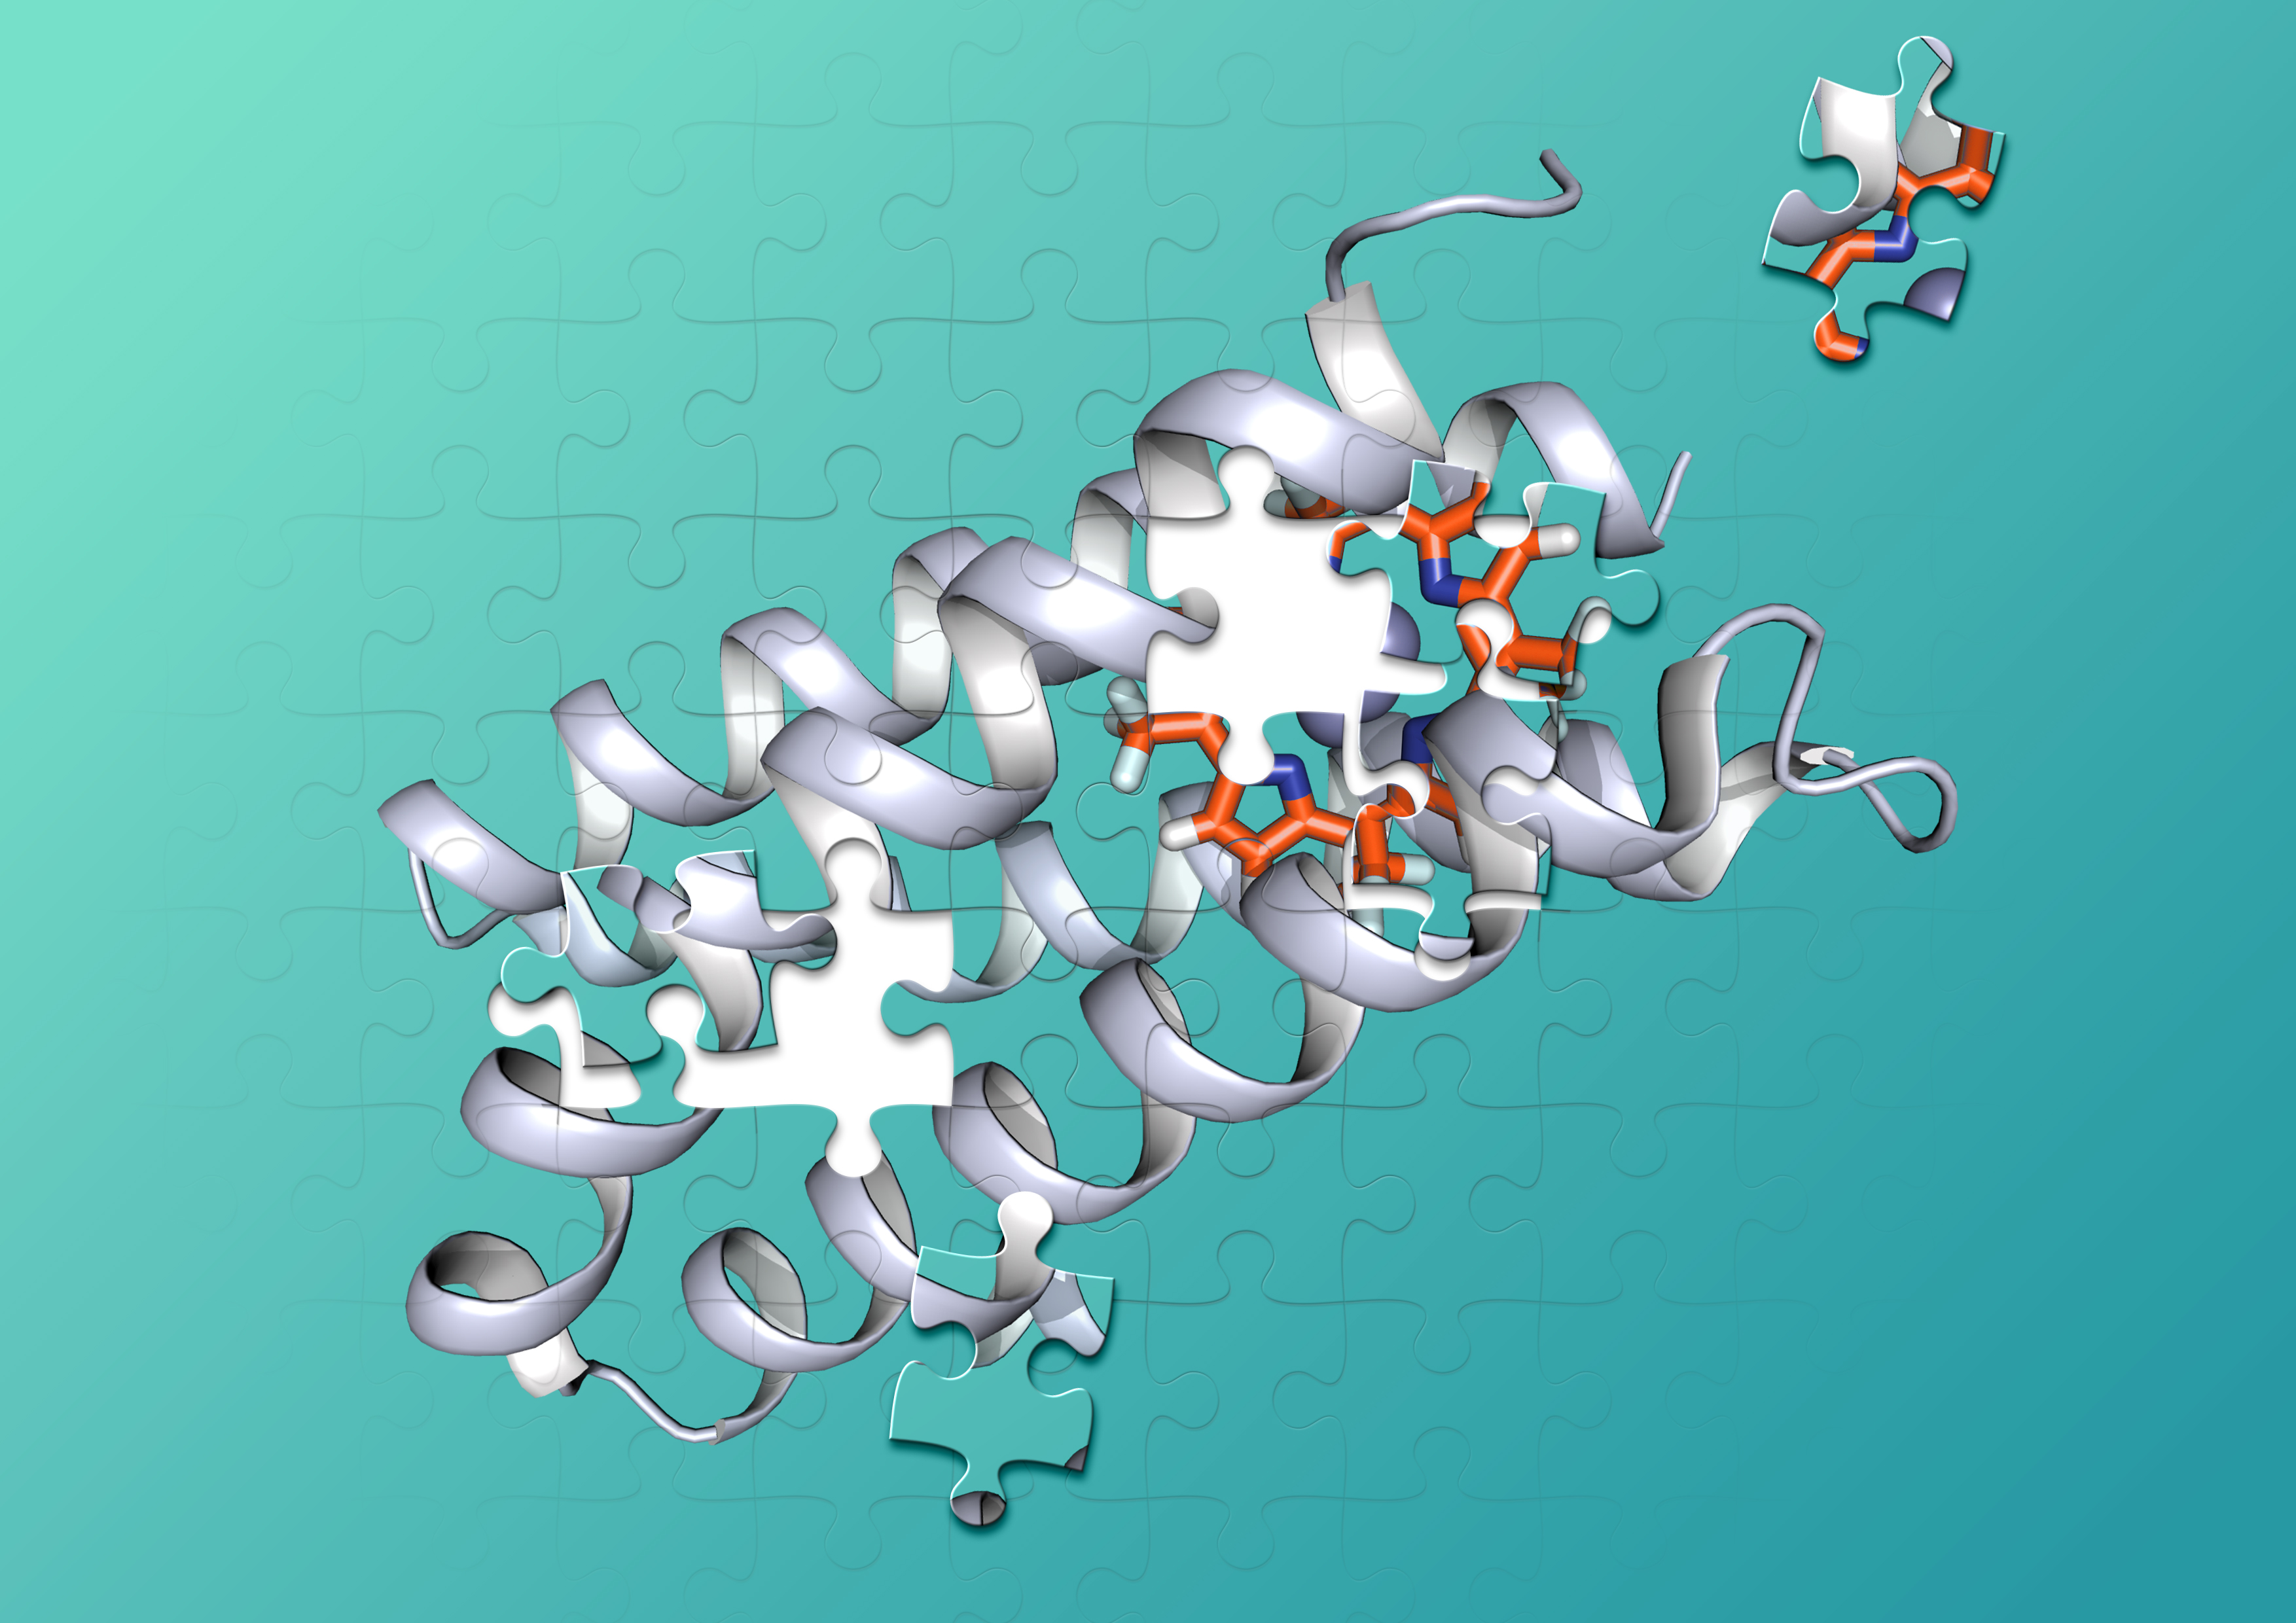 An illustration of a protein jigsaw puzzle